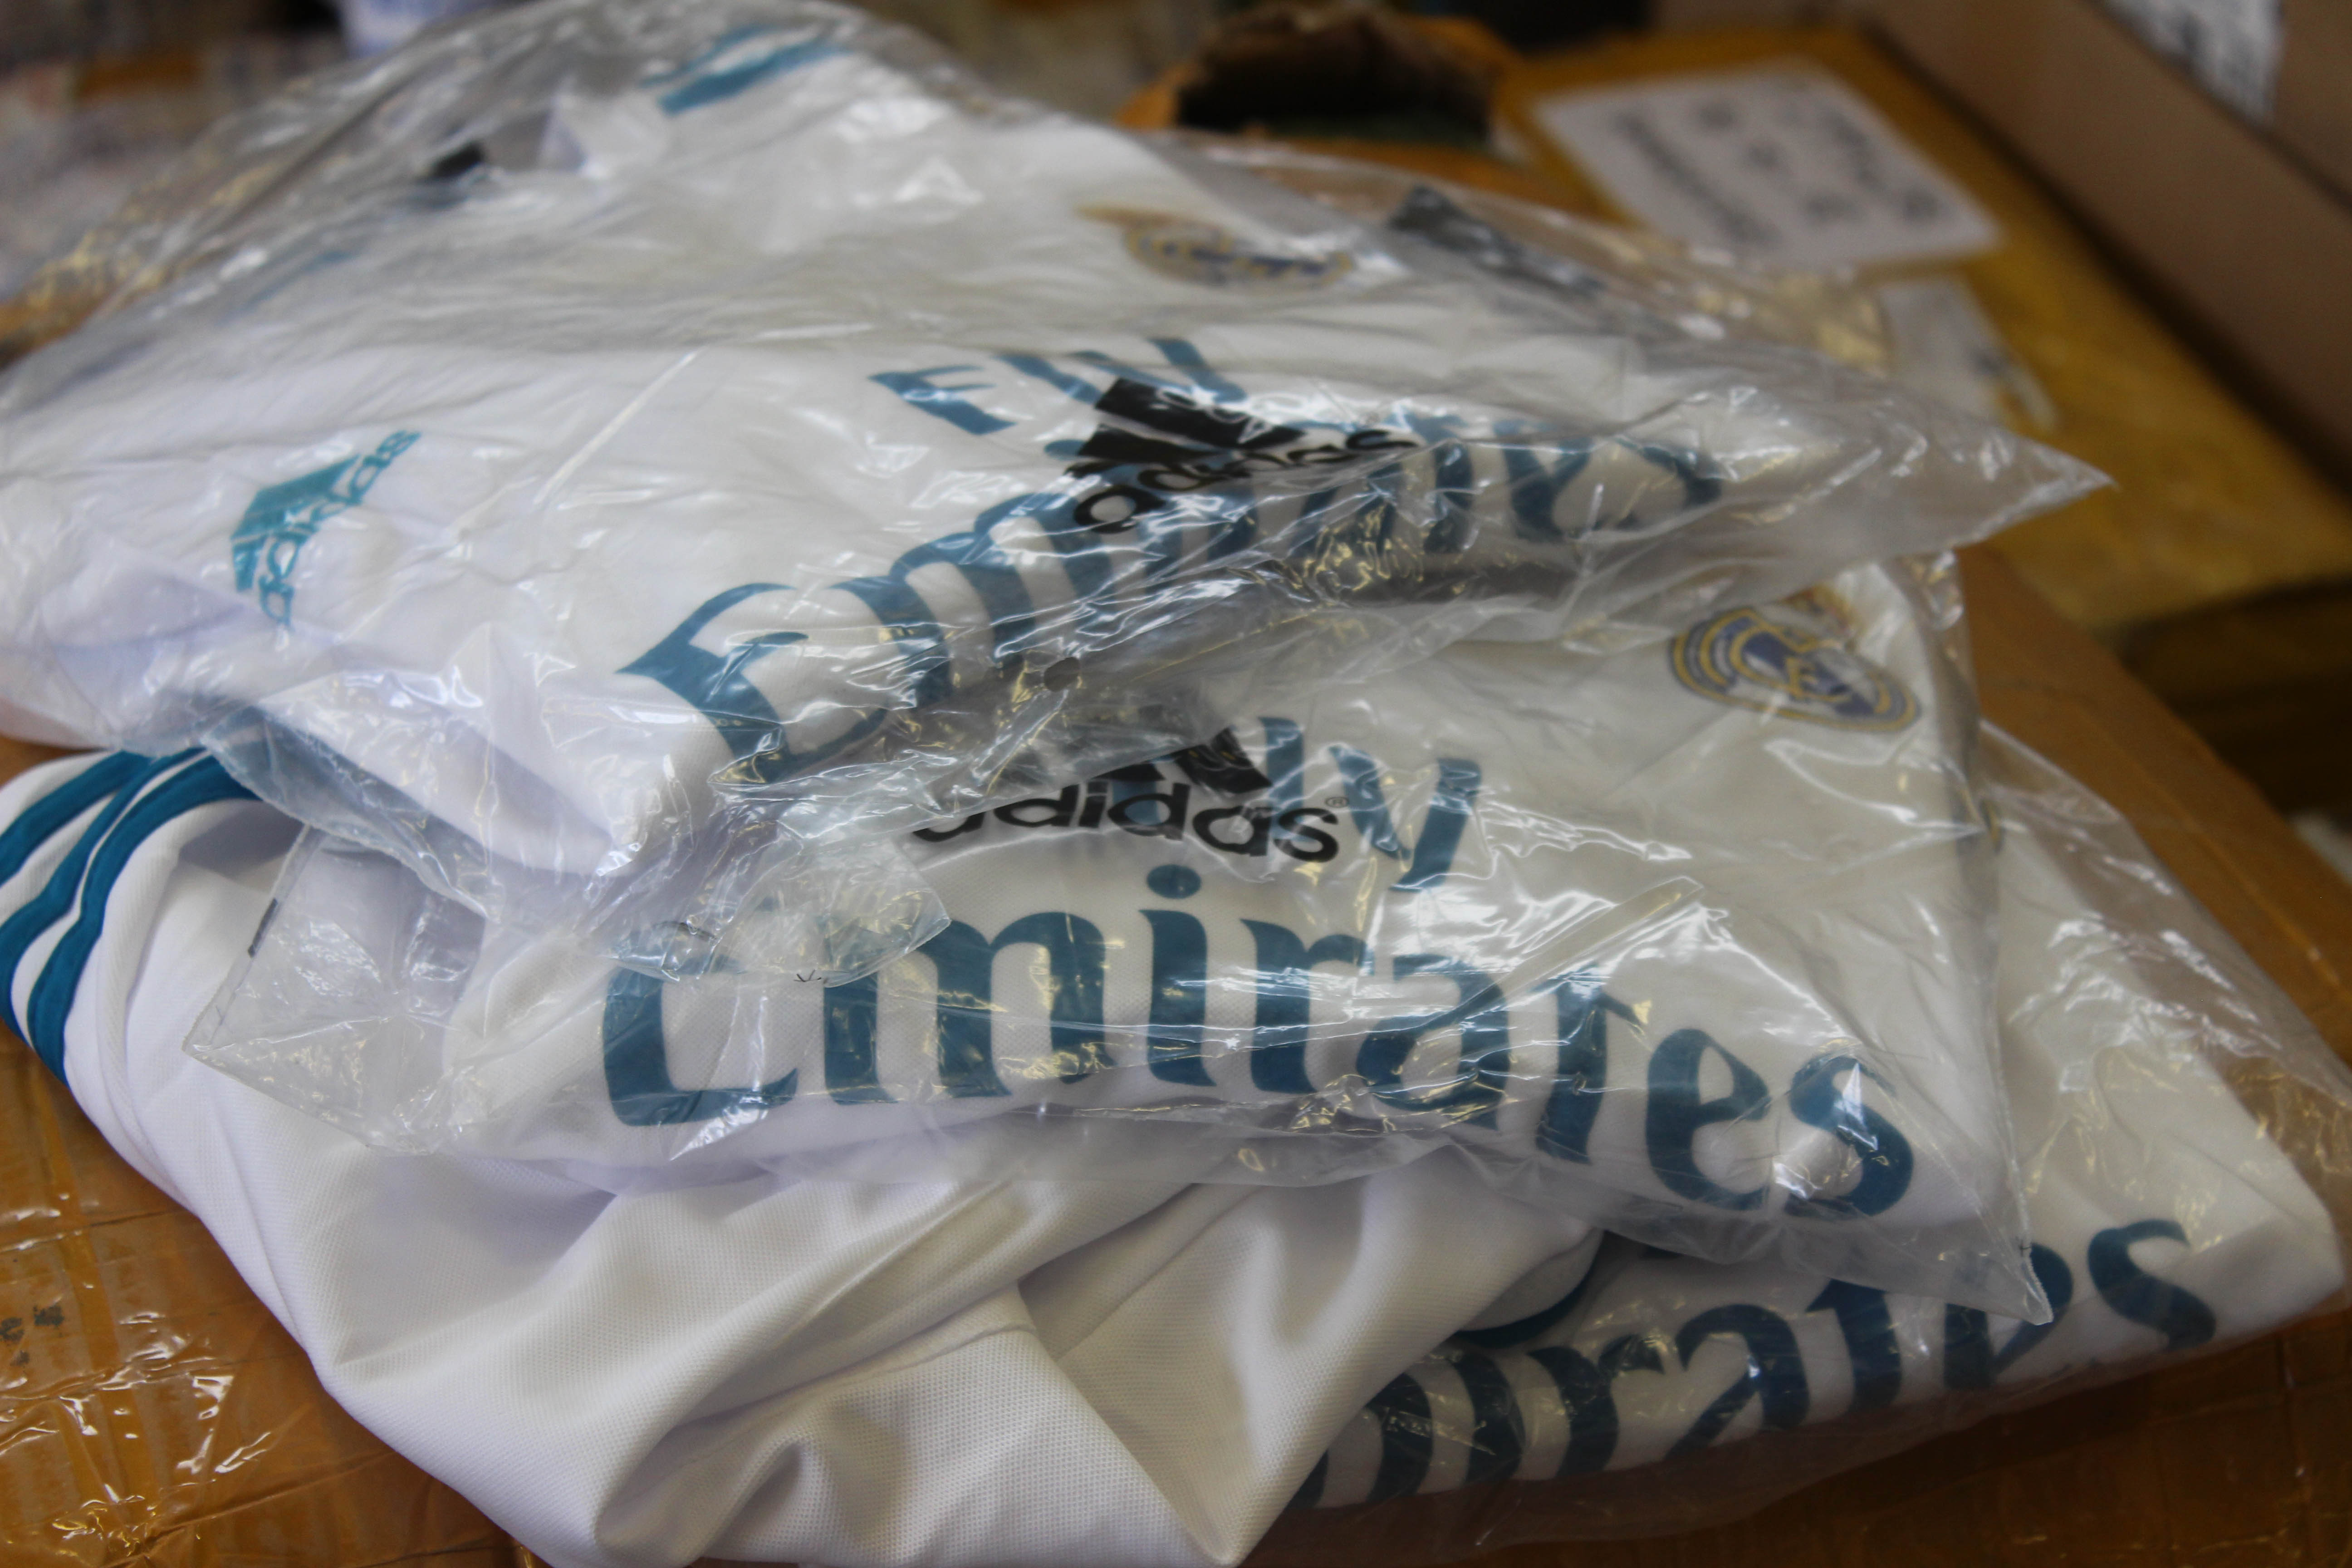 Football kits seized ahead of World Cup